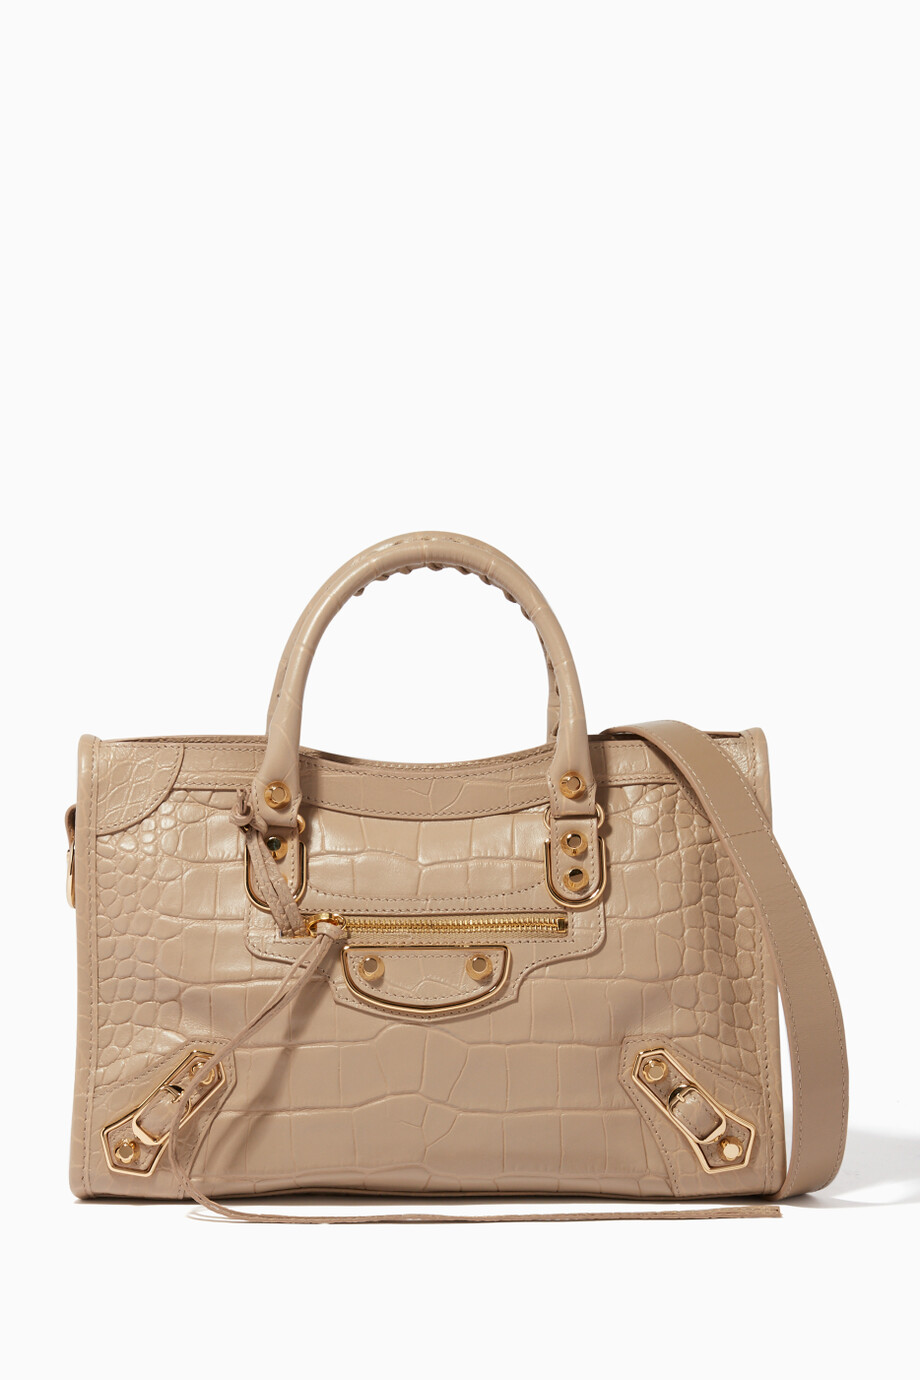 2dc91d3234 Shop Balenciaga Neutral Beige Small Classic Metallic Edge City Tote ...